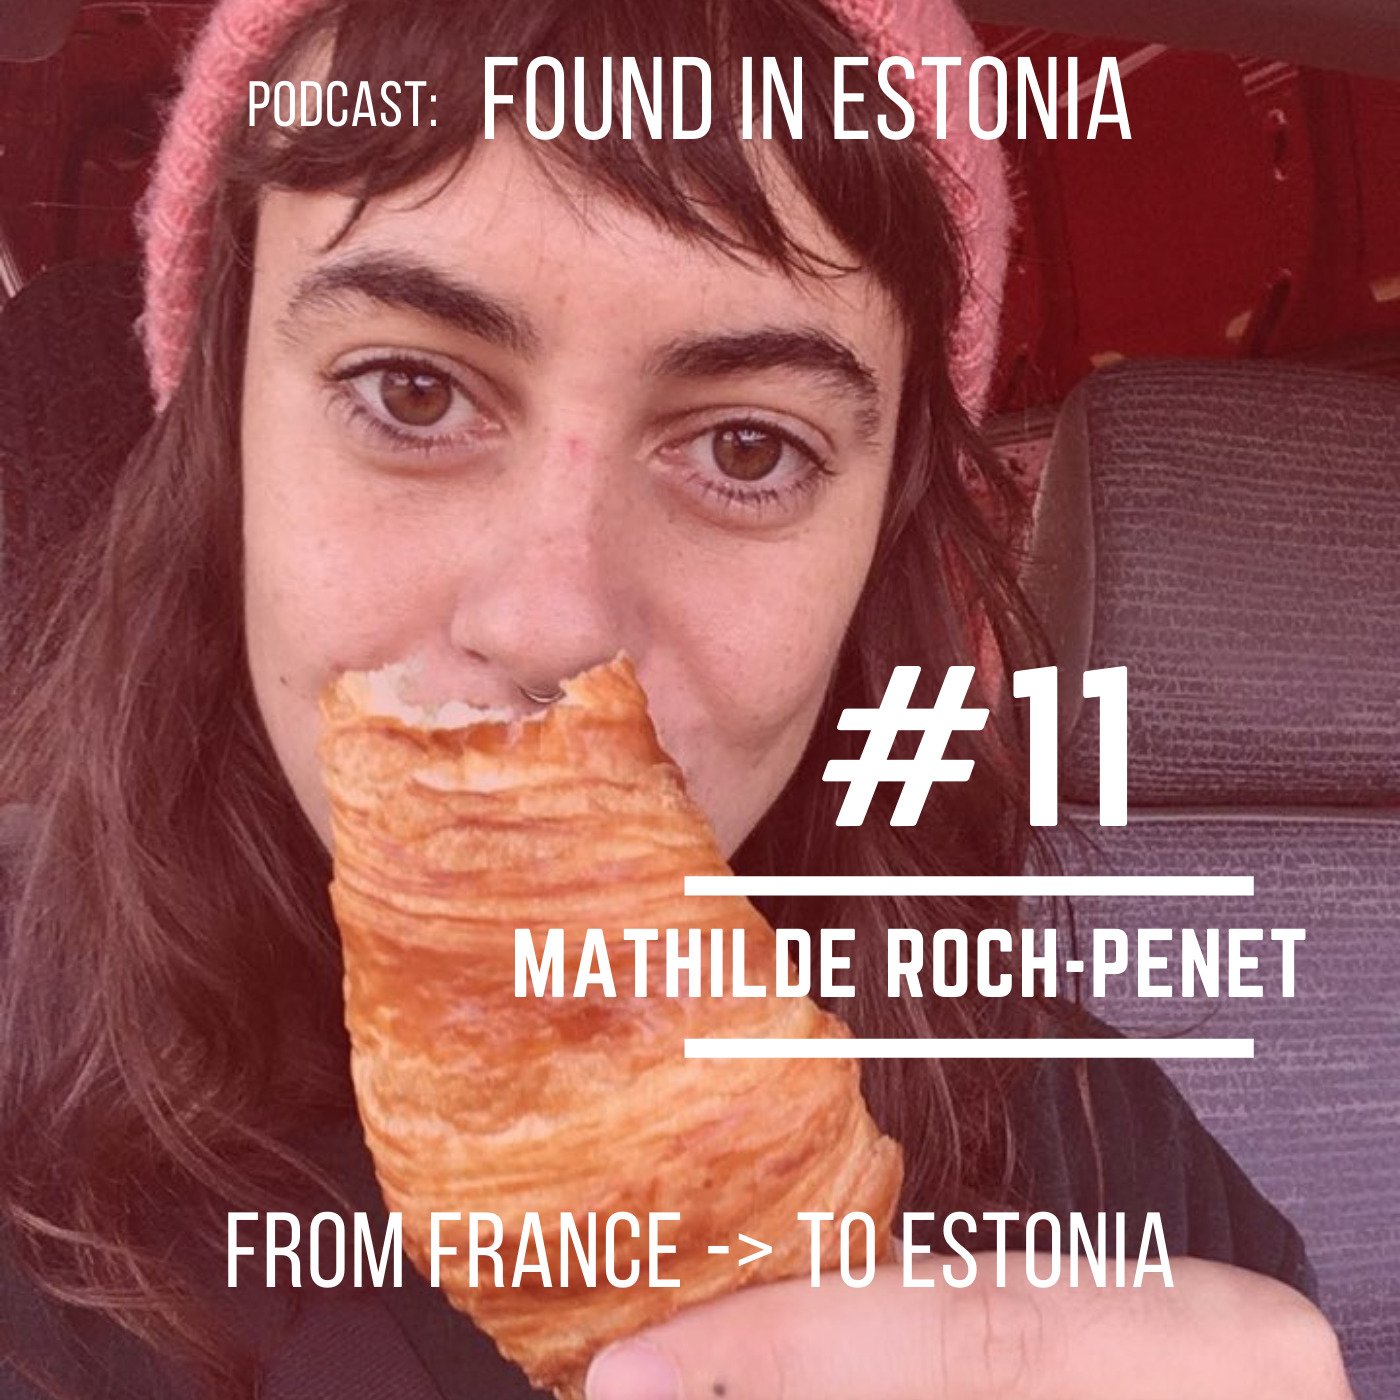 #11 Mathilde Roch-Penet - from France to Estonia